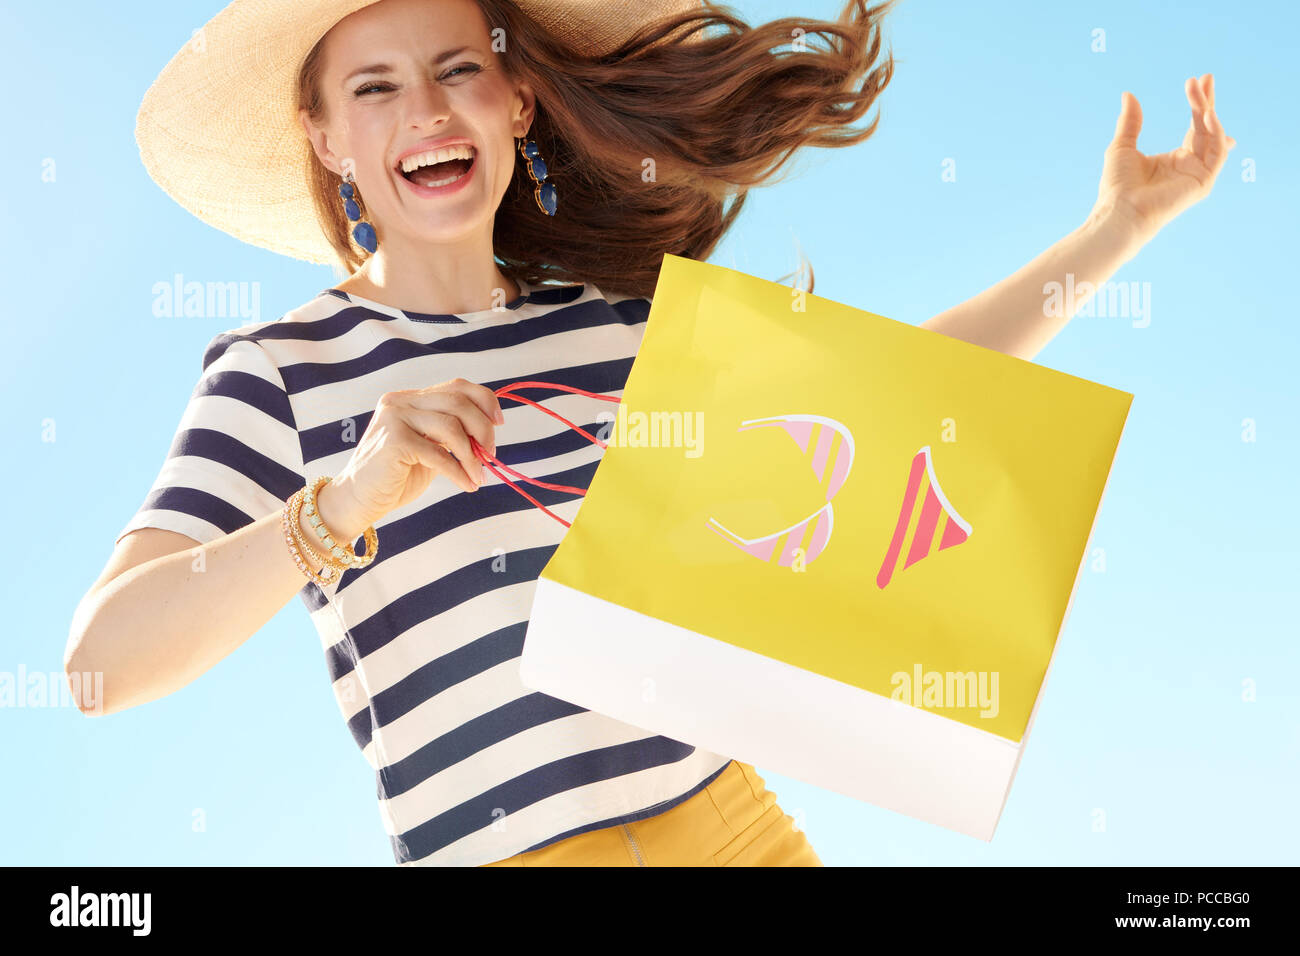 cheerful modern woman in straw hat against blue sky with yellow shopping bag with bikini - Stock Image